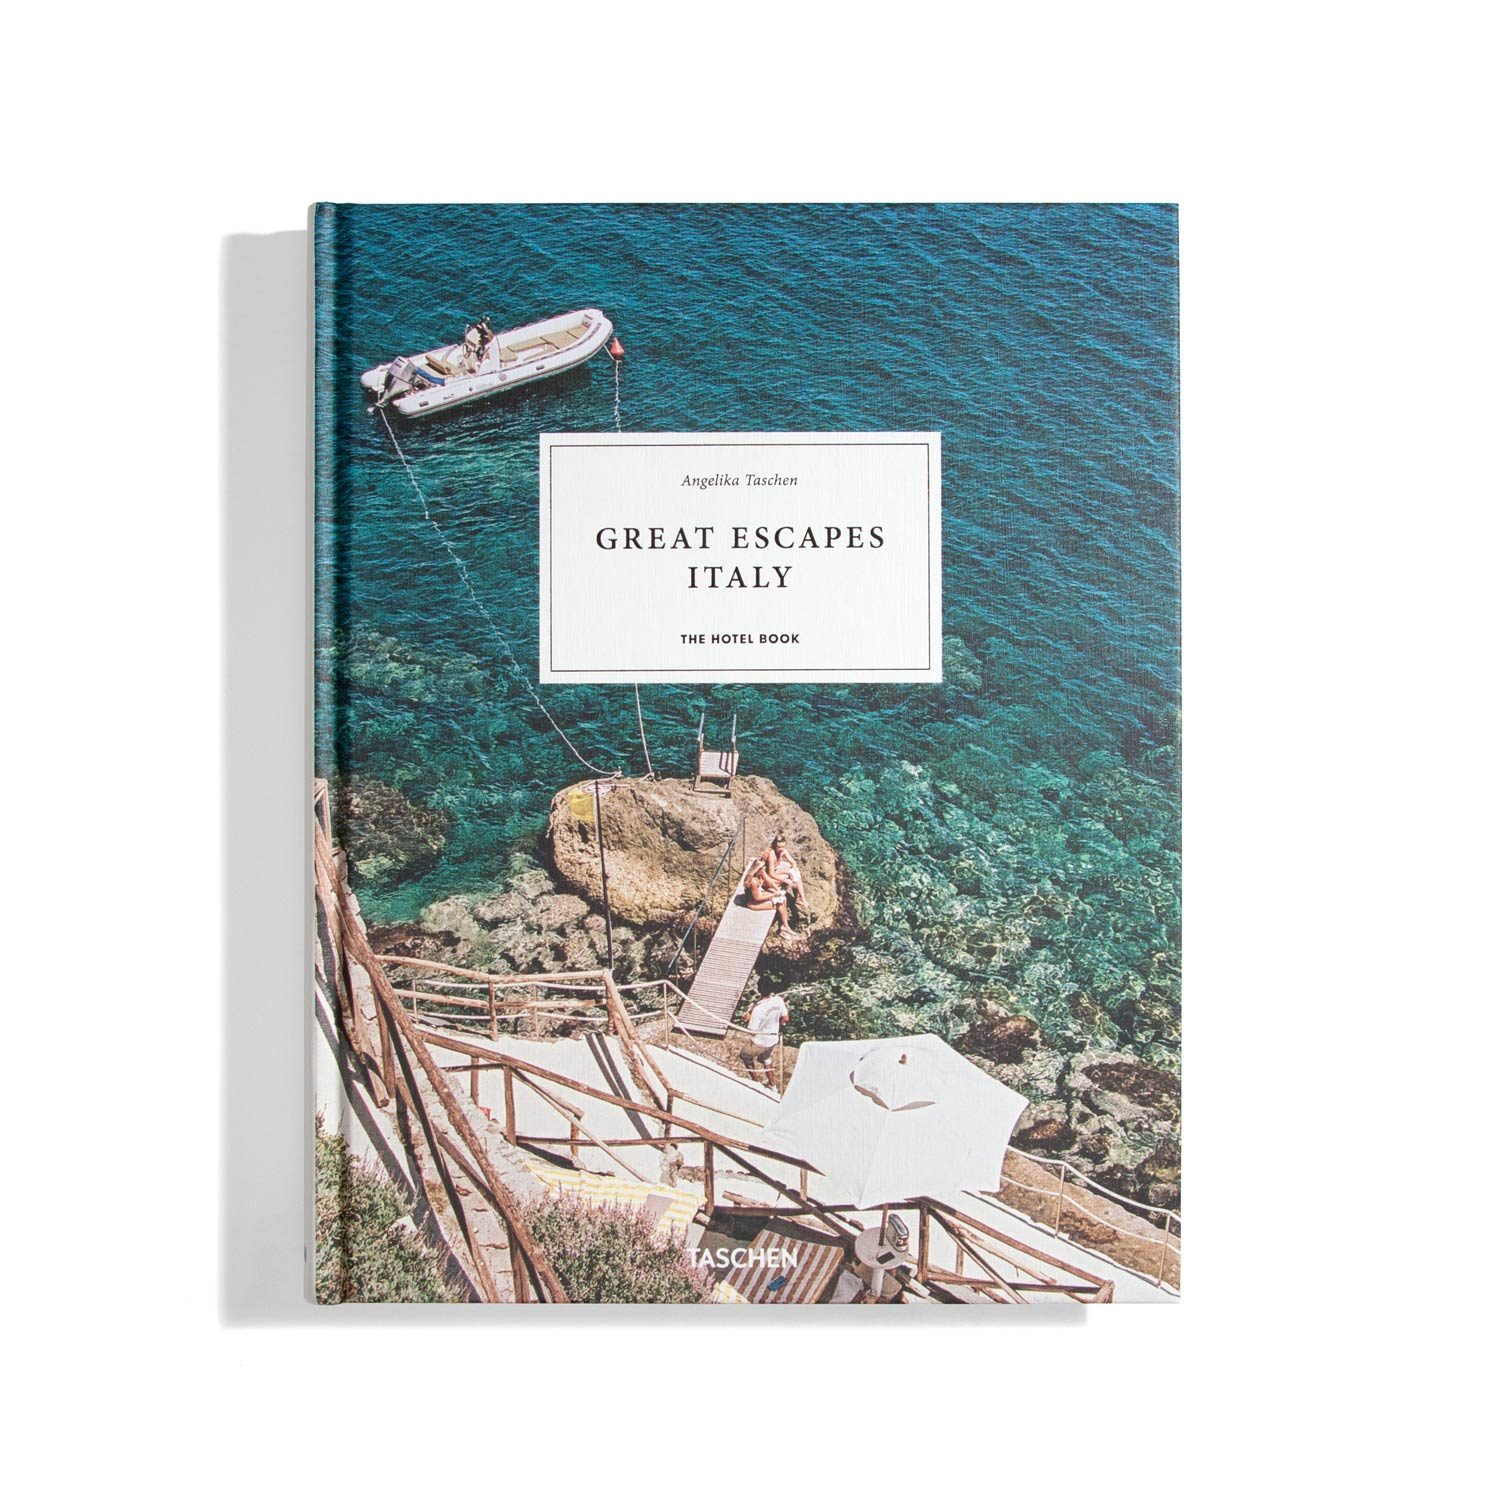 Great Escapes Italy - The Hotel Book